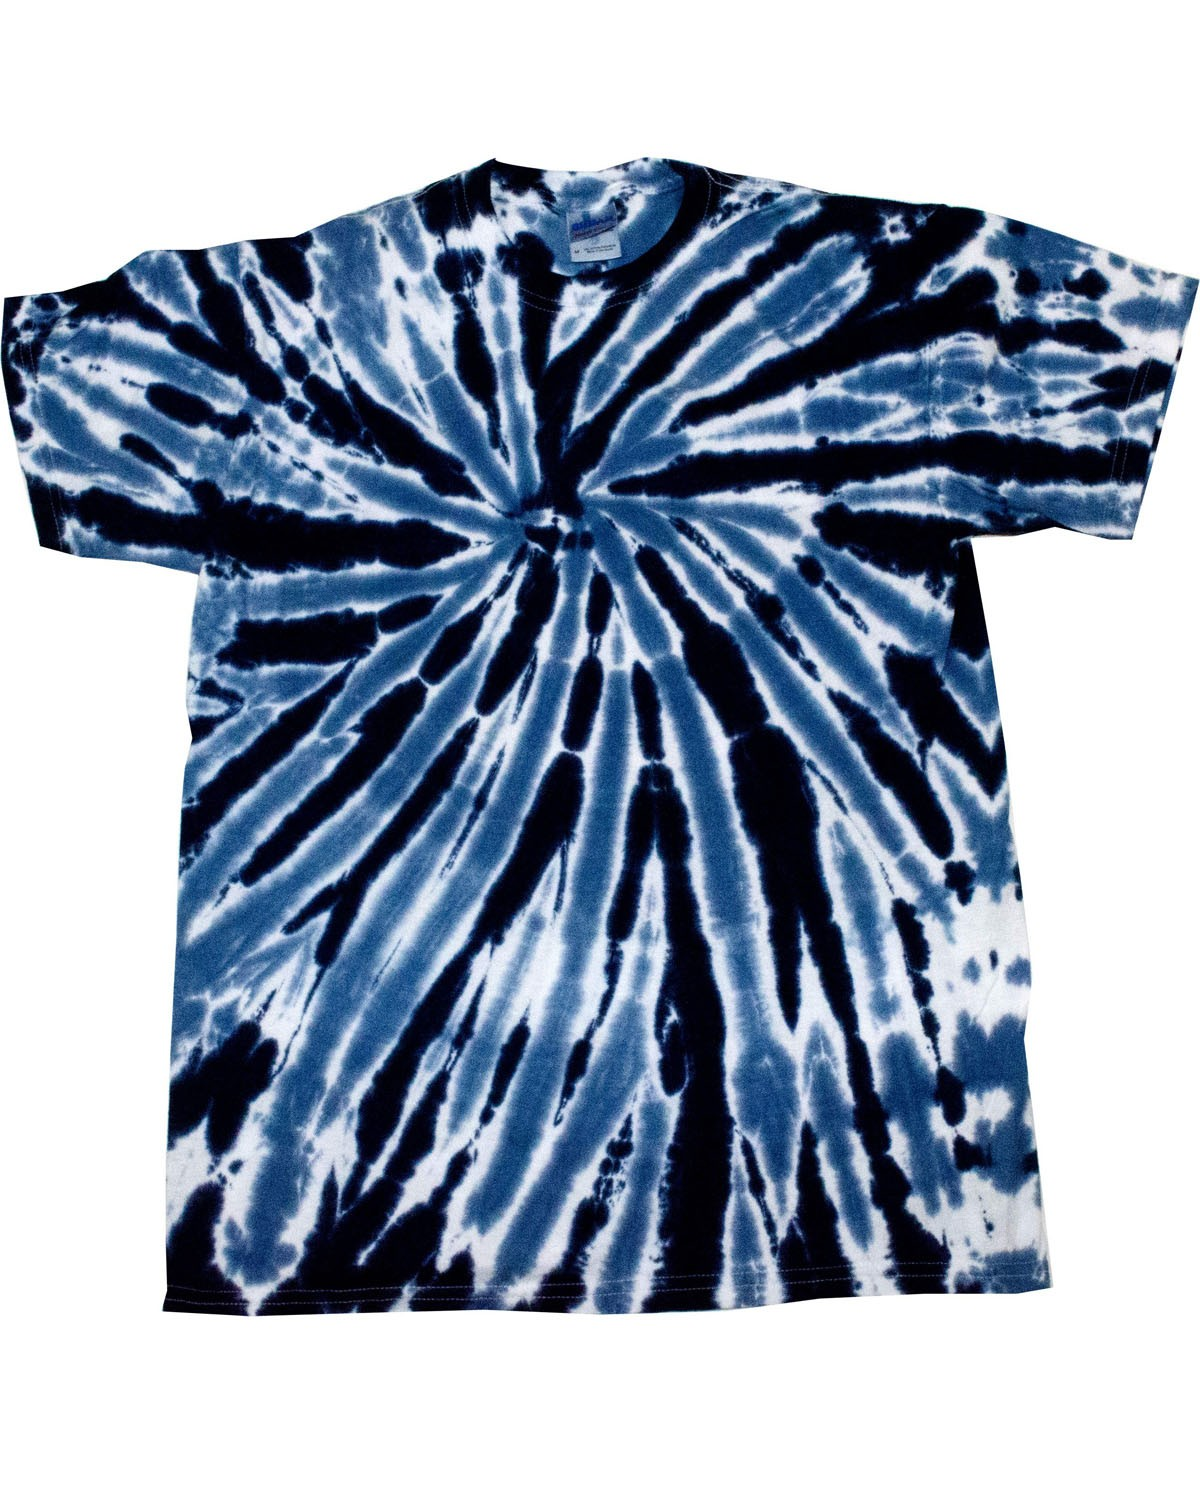 CD110Y Tie-Dye Drop Ship TWIST NAVY